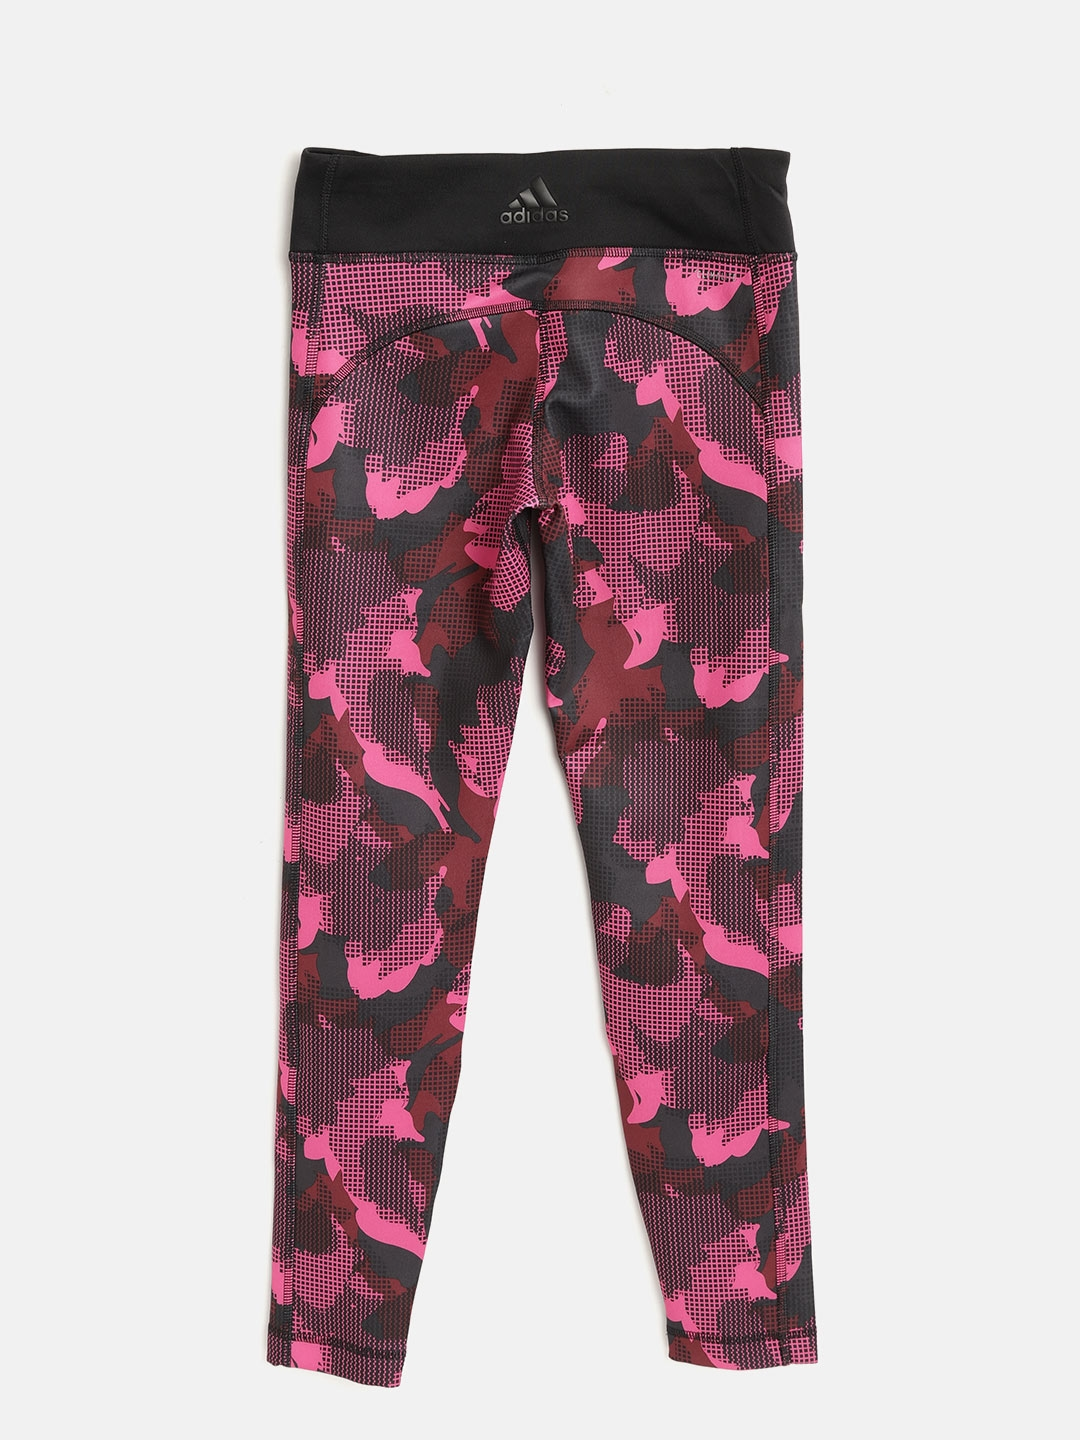 a0c1ccc402573 Buy ADIDAS Girls Pink & Black YG AOP Camouflage Print Training ...